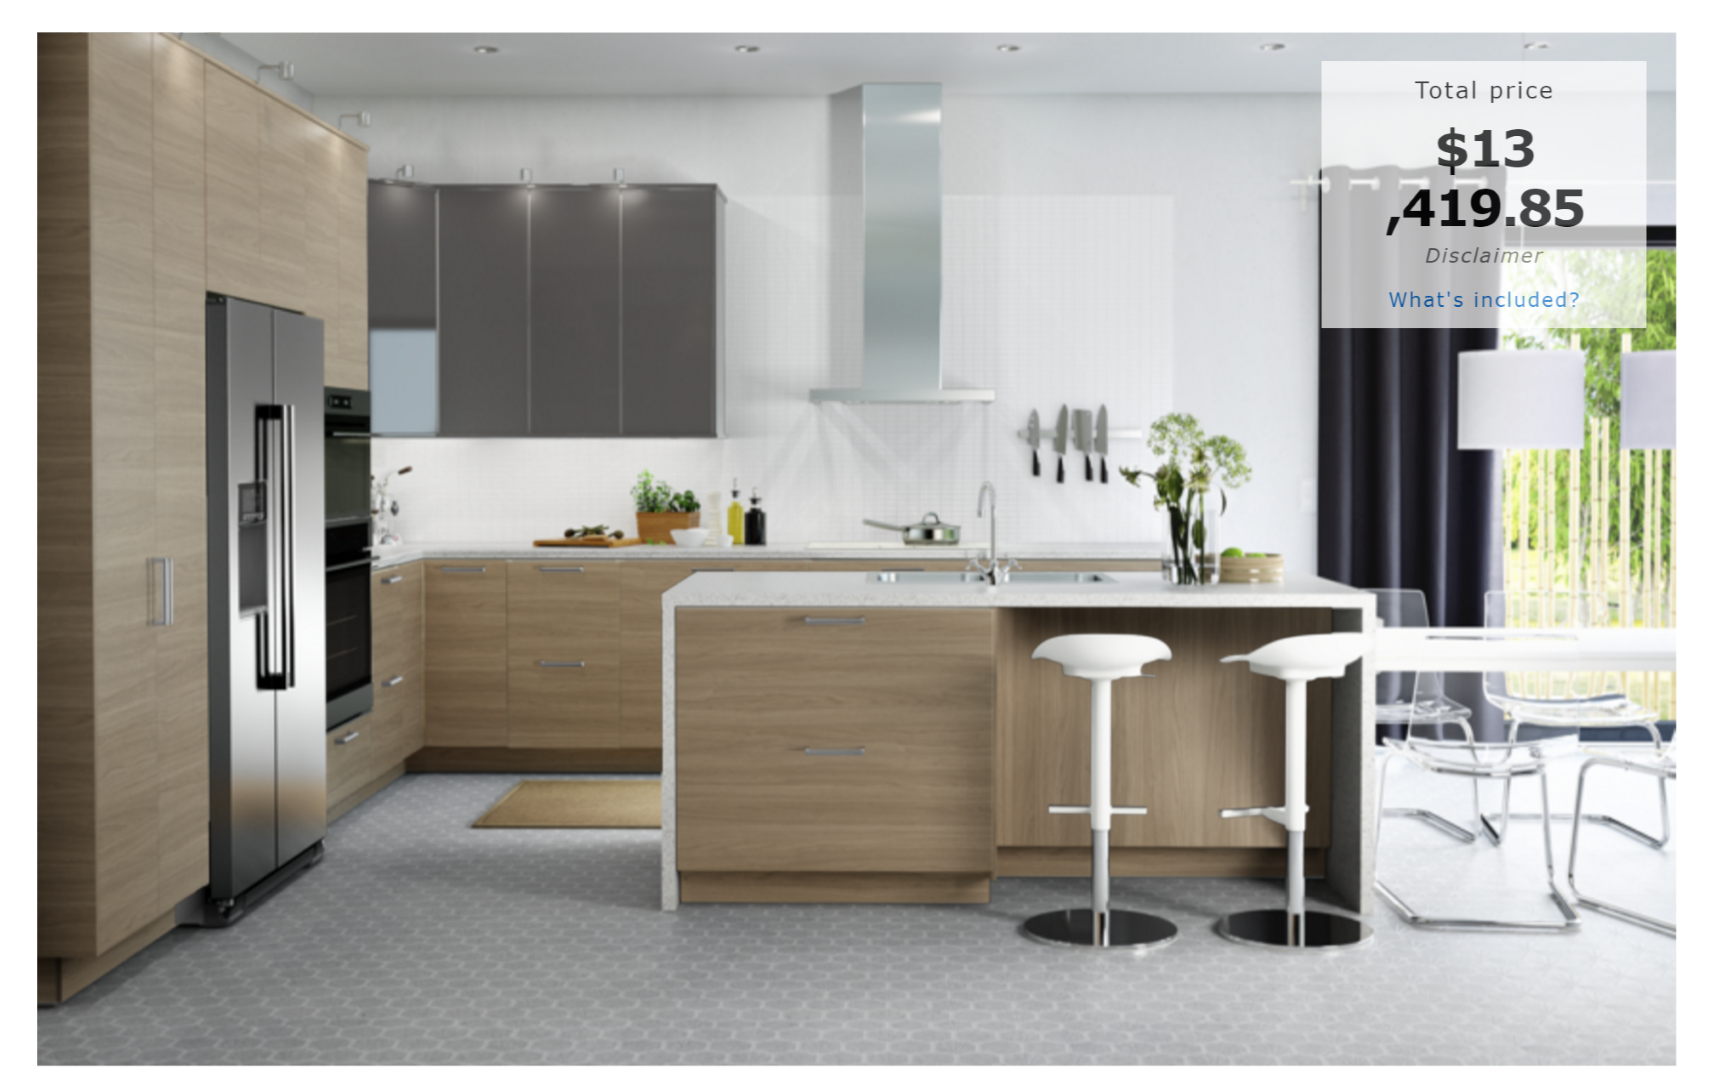 How Much Will an IKEA Kitchen Cost?